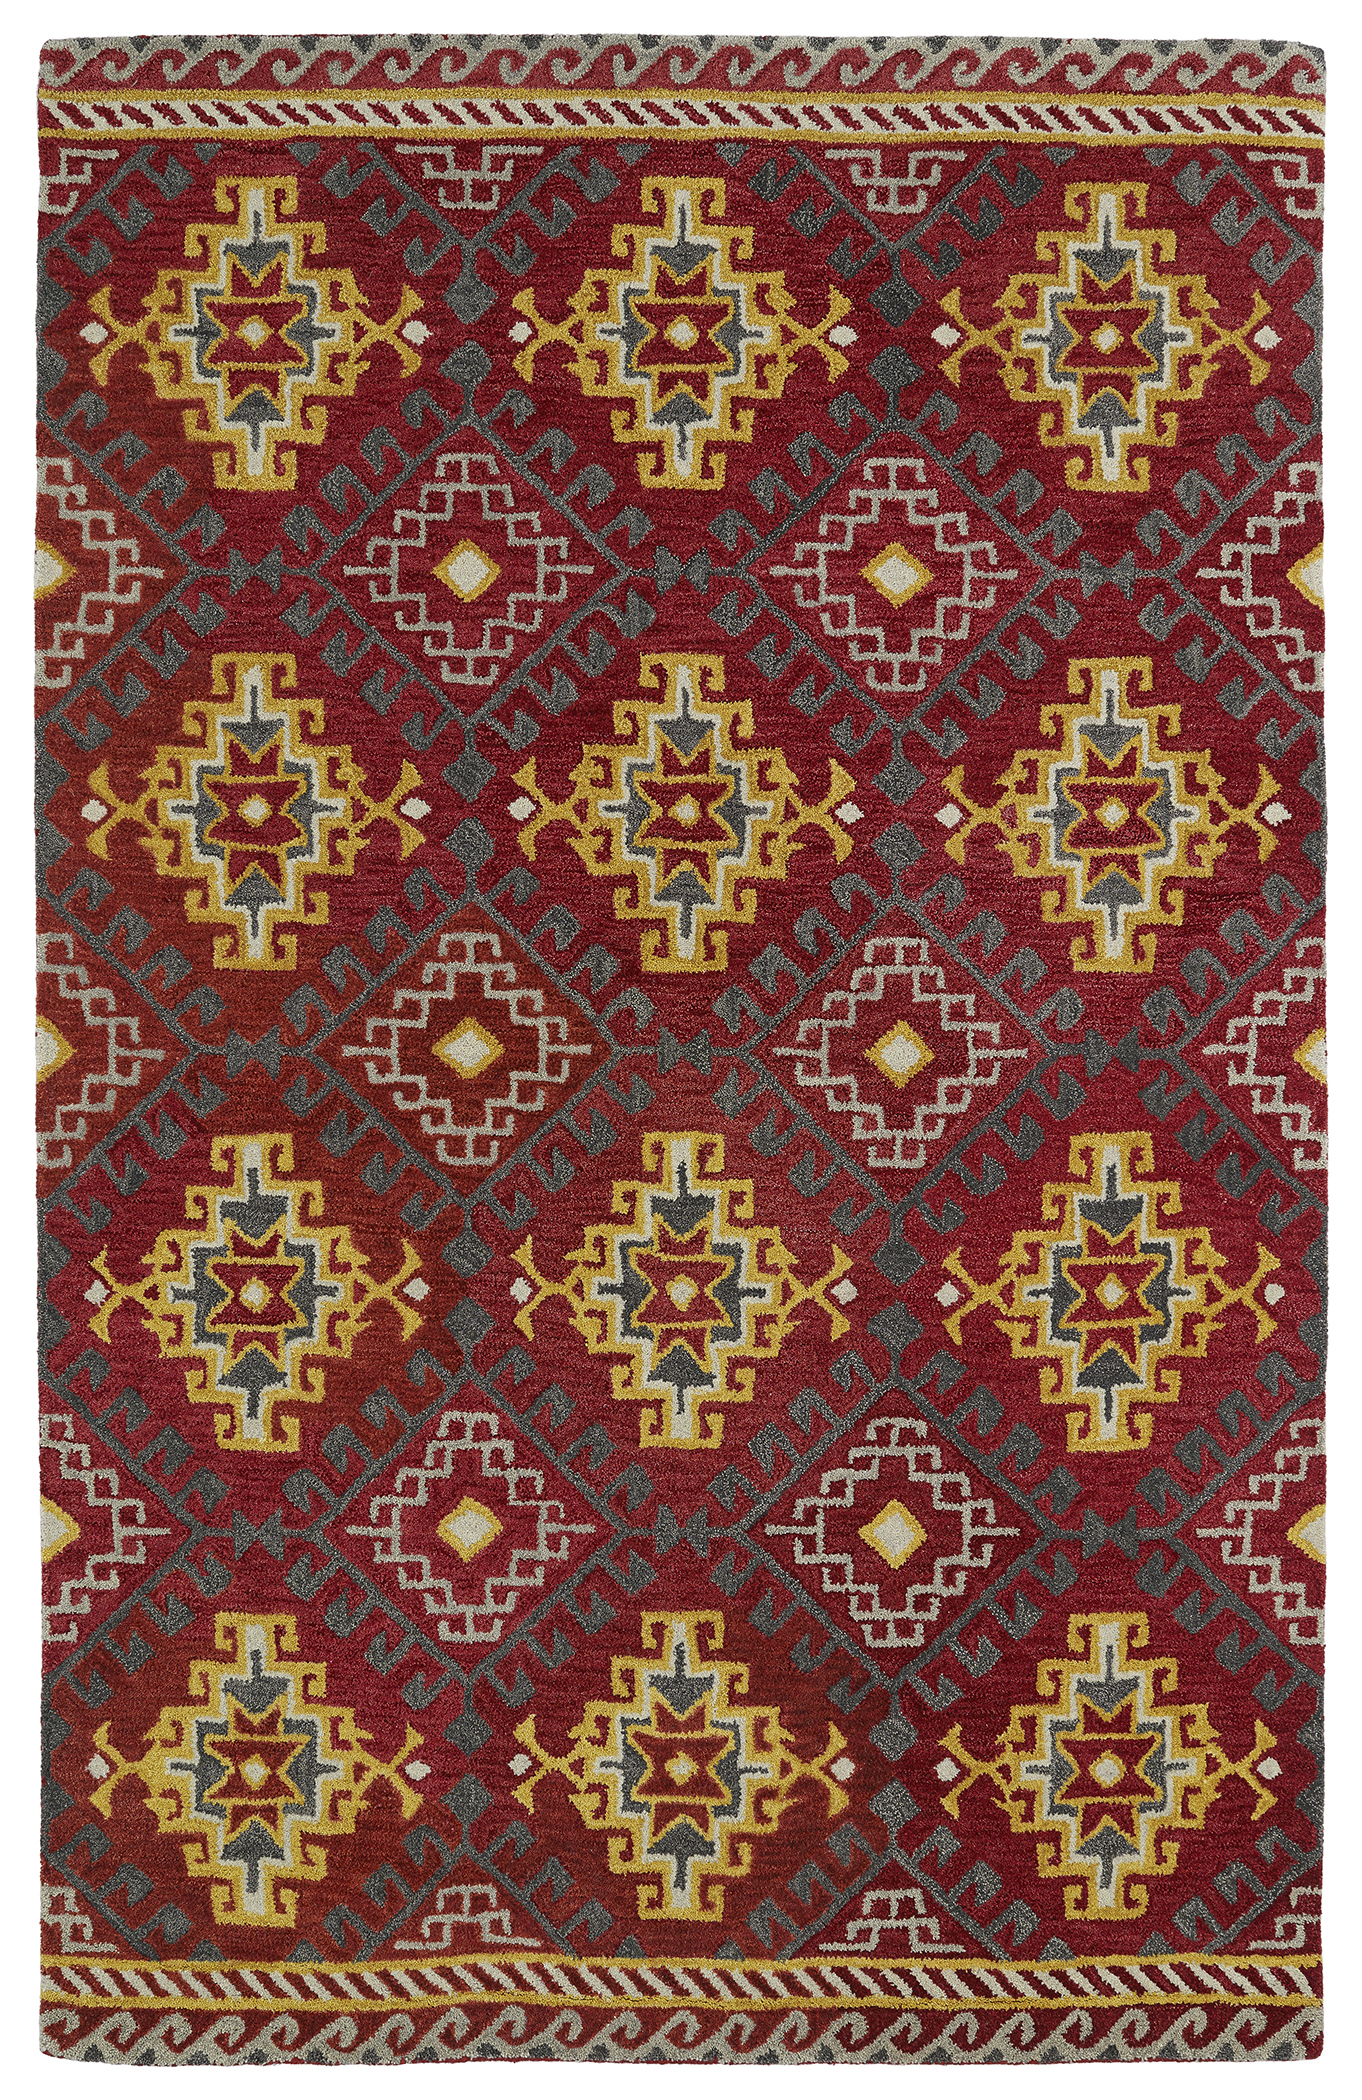 Kaleen Global Inspirations GLB07 25 Red Area Rug